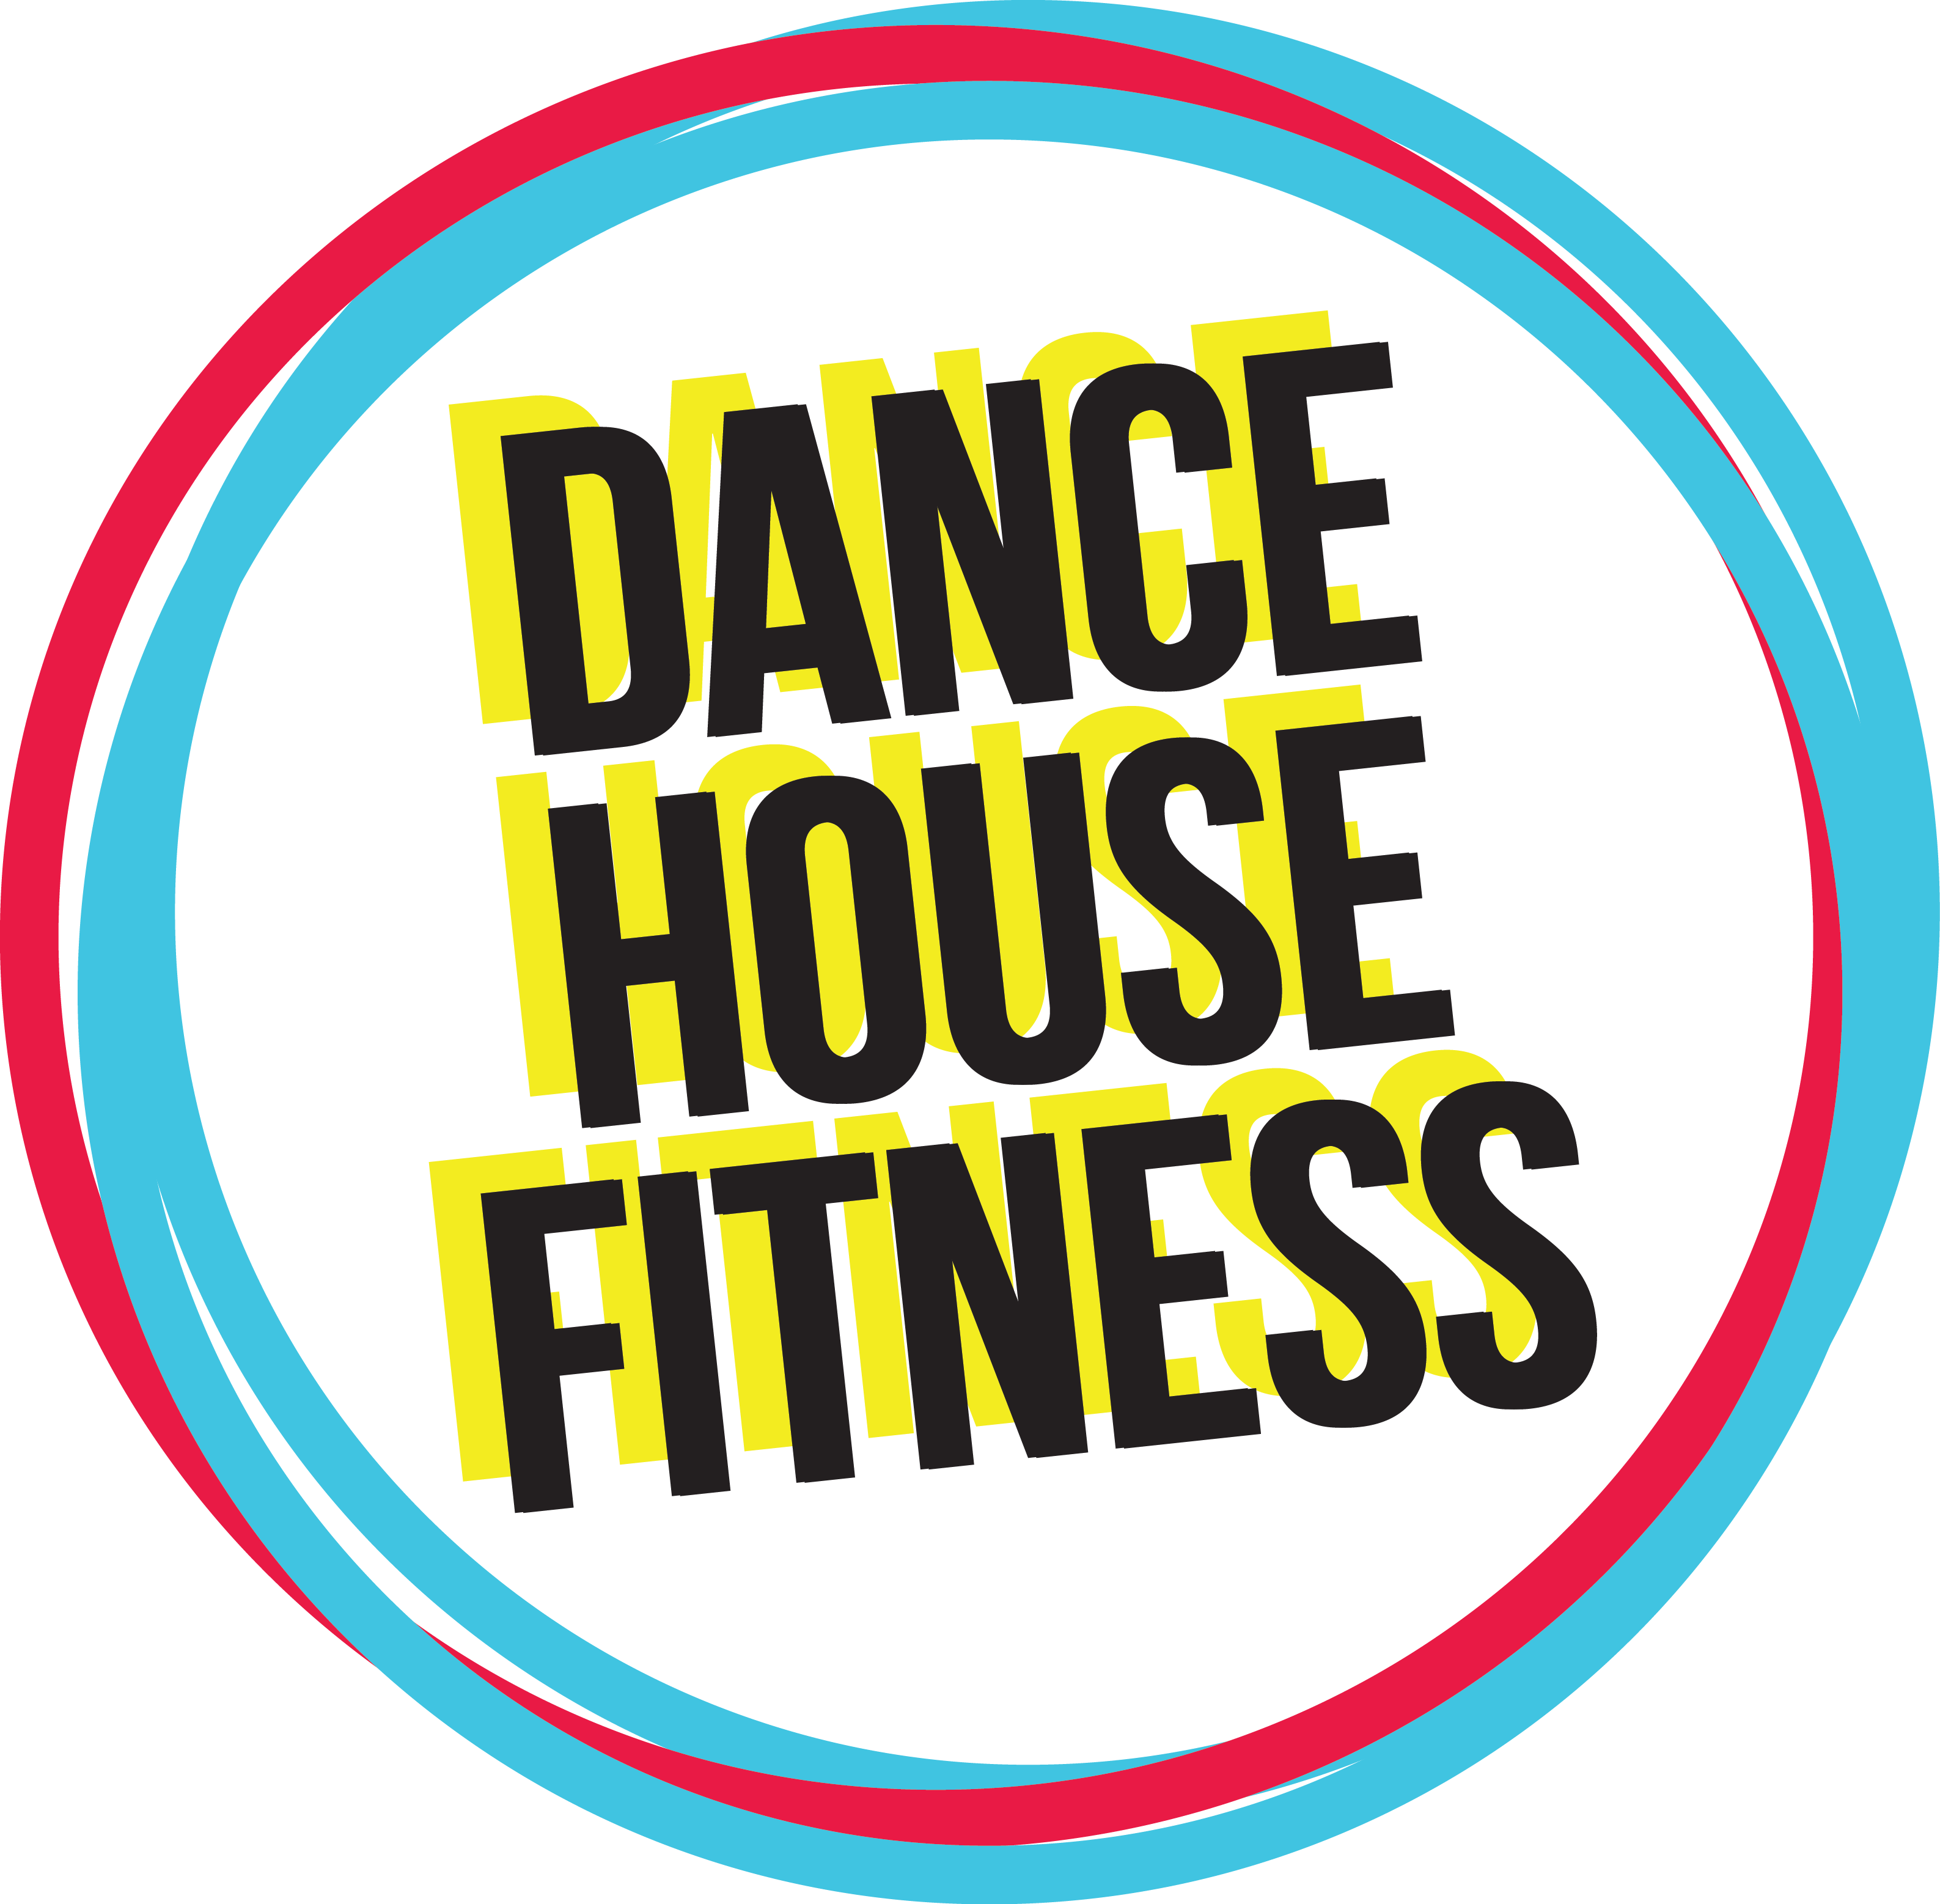 Dhf house choreography. Fitness clipart aerobic dance